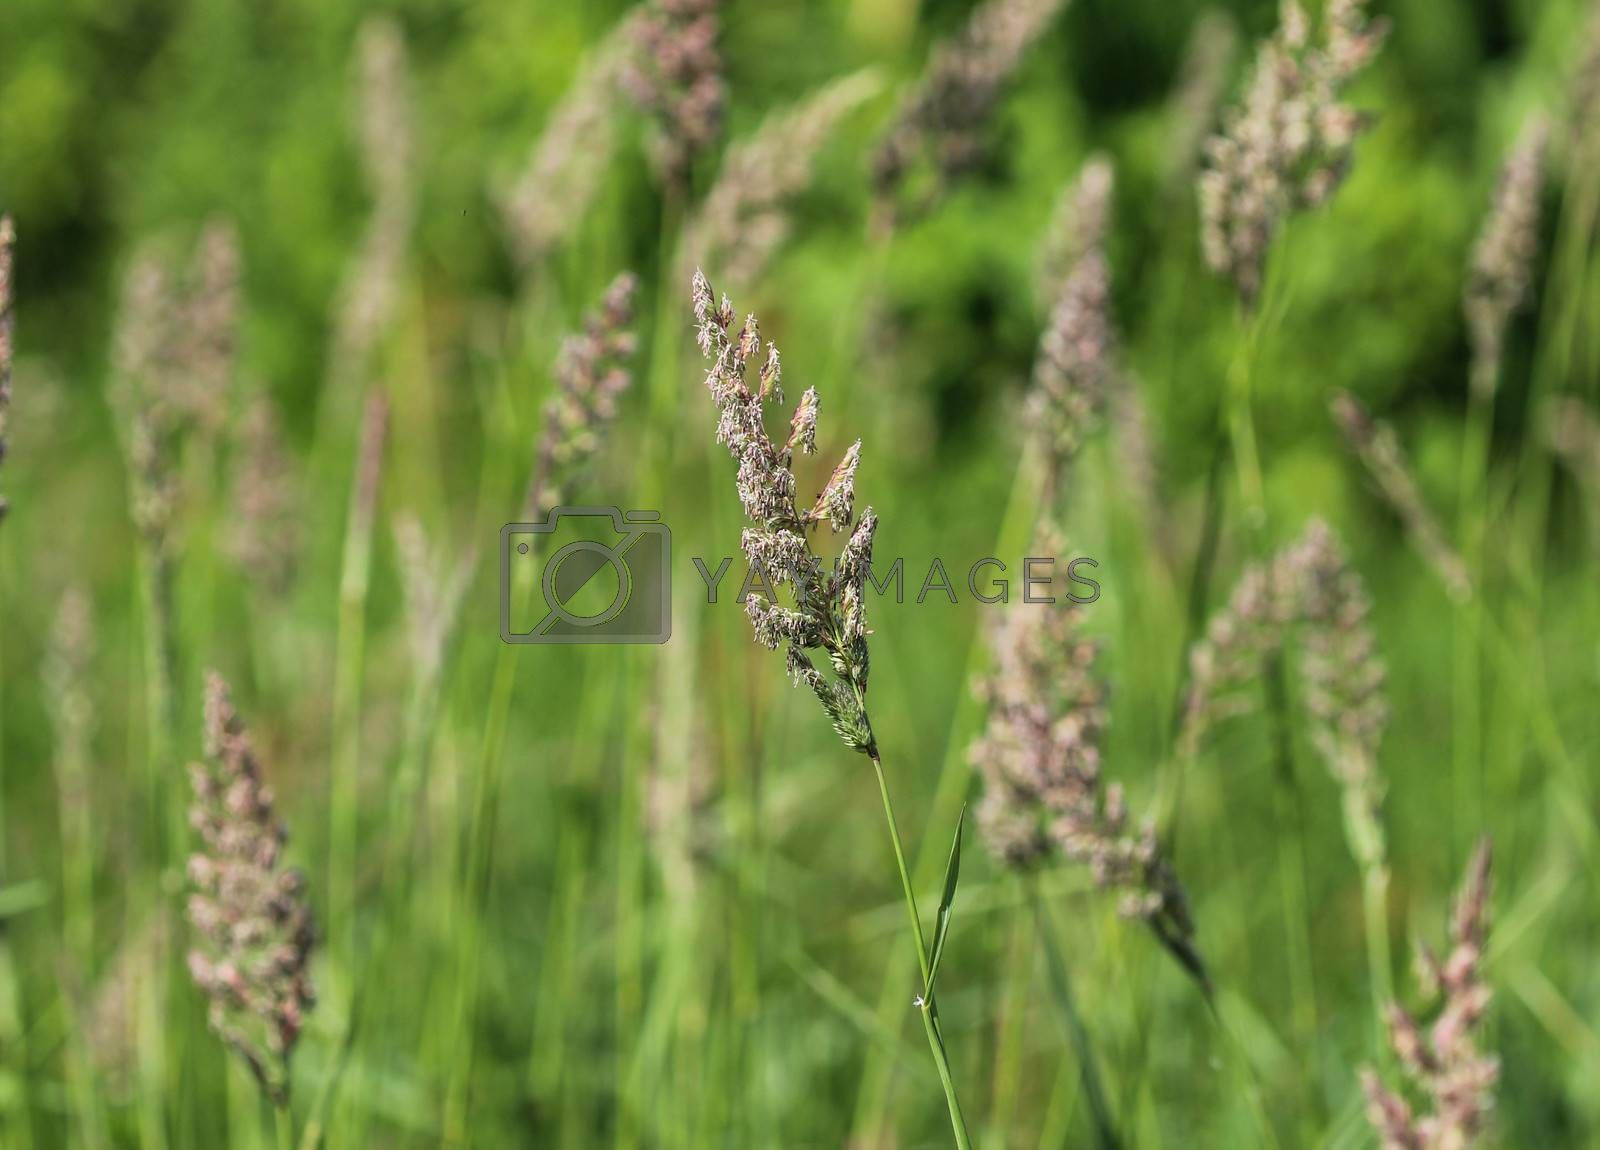 Royalty free image of Dactylis glomerata, also known as cock's foot, orchard grass, or cat grass by michaelmeijer